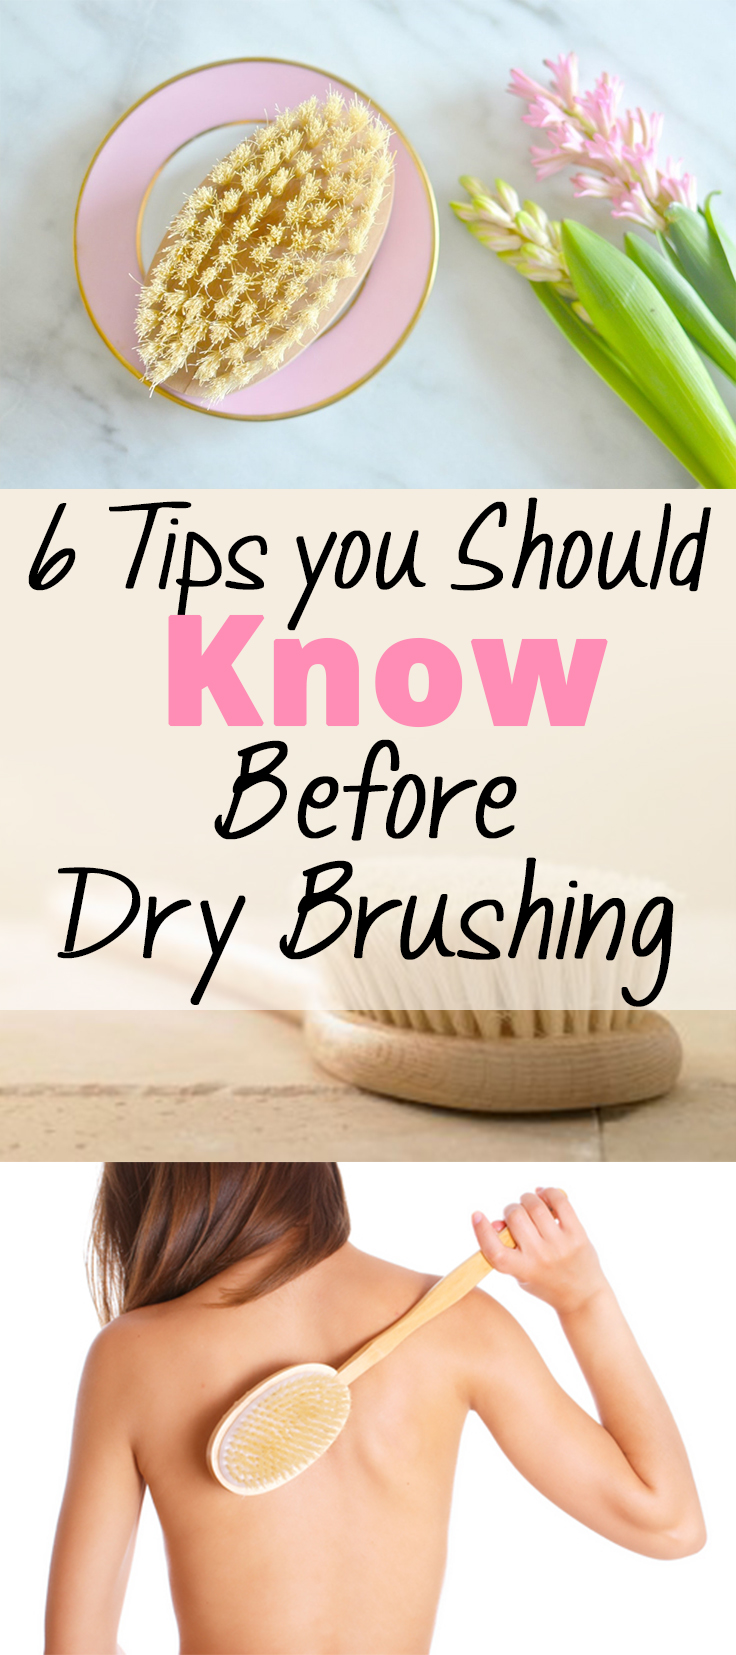 6 Tips you Should Know Before Dry Brushing